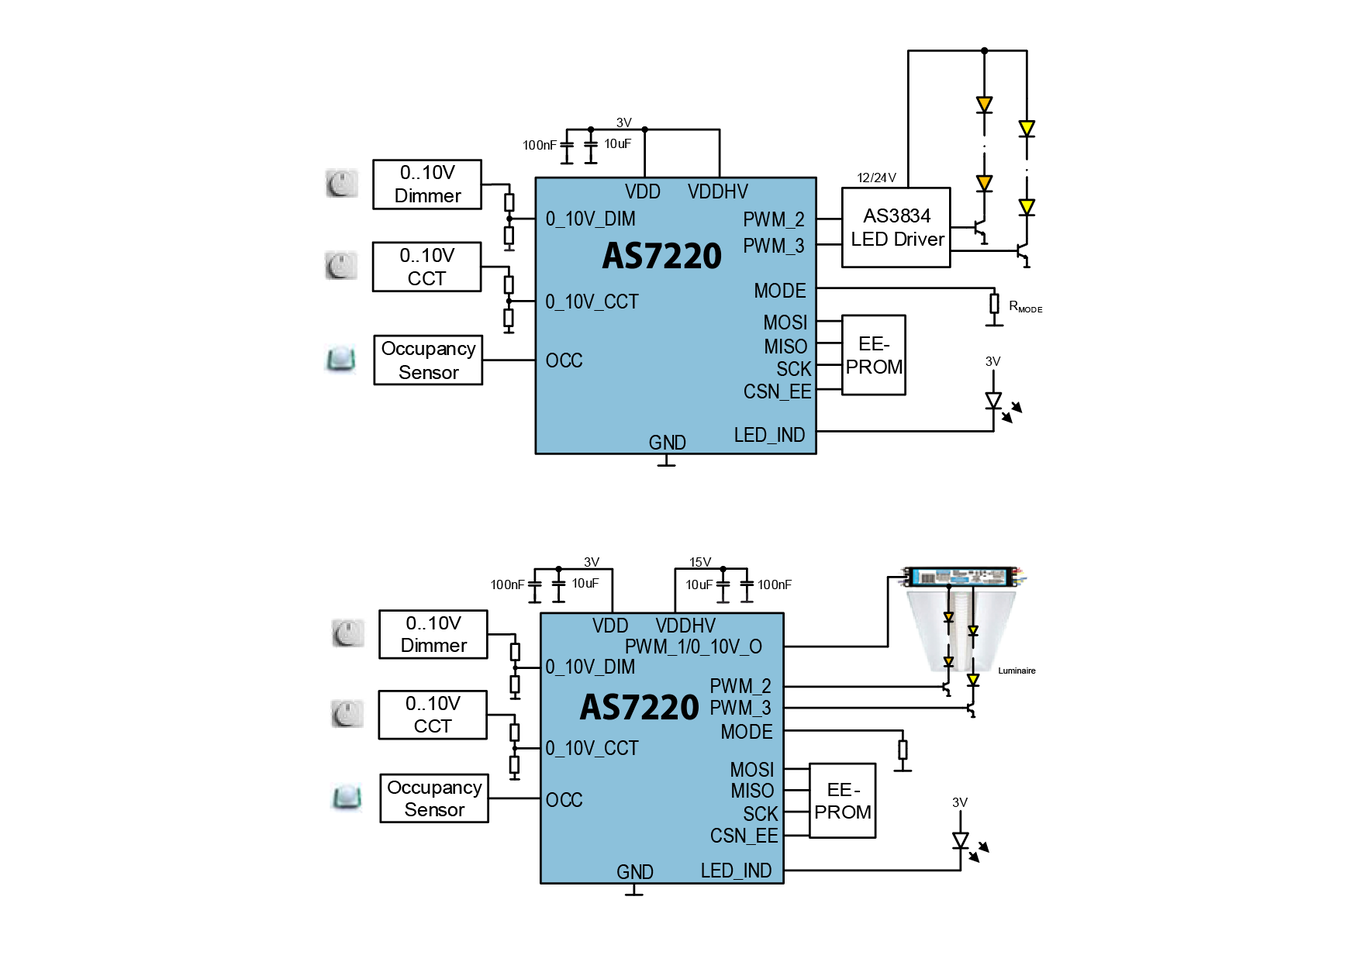 Led Light Color Maintenance Lumen Cct Control Ams 0 10v Dimmer Circuit Diagram Legacy Controls Are Fully Supported With Direct Connection To Outputs Include Pwm Management Of Digital Drivers Or Analog